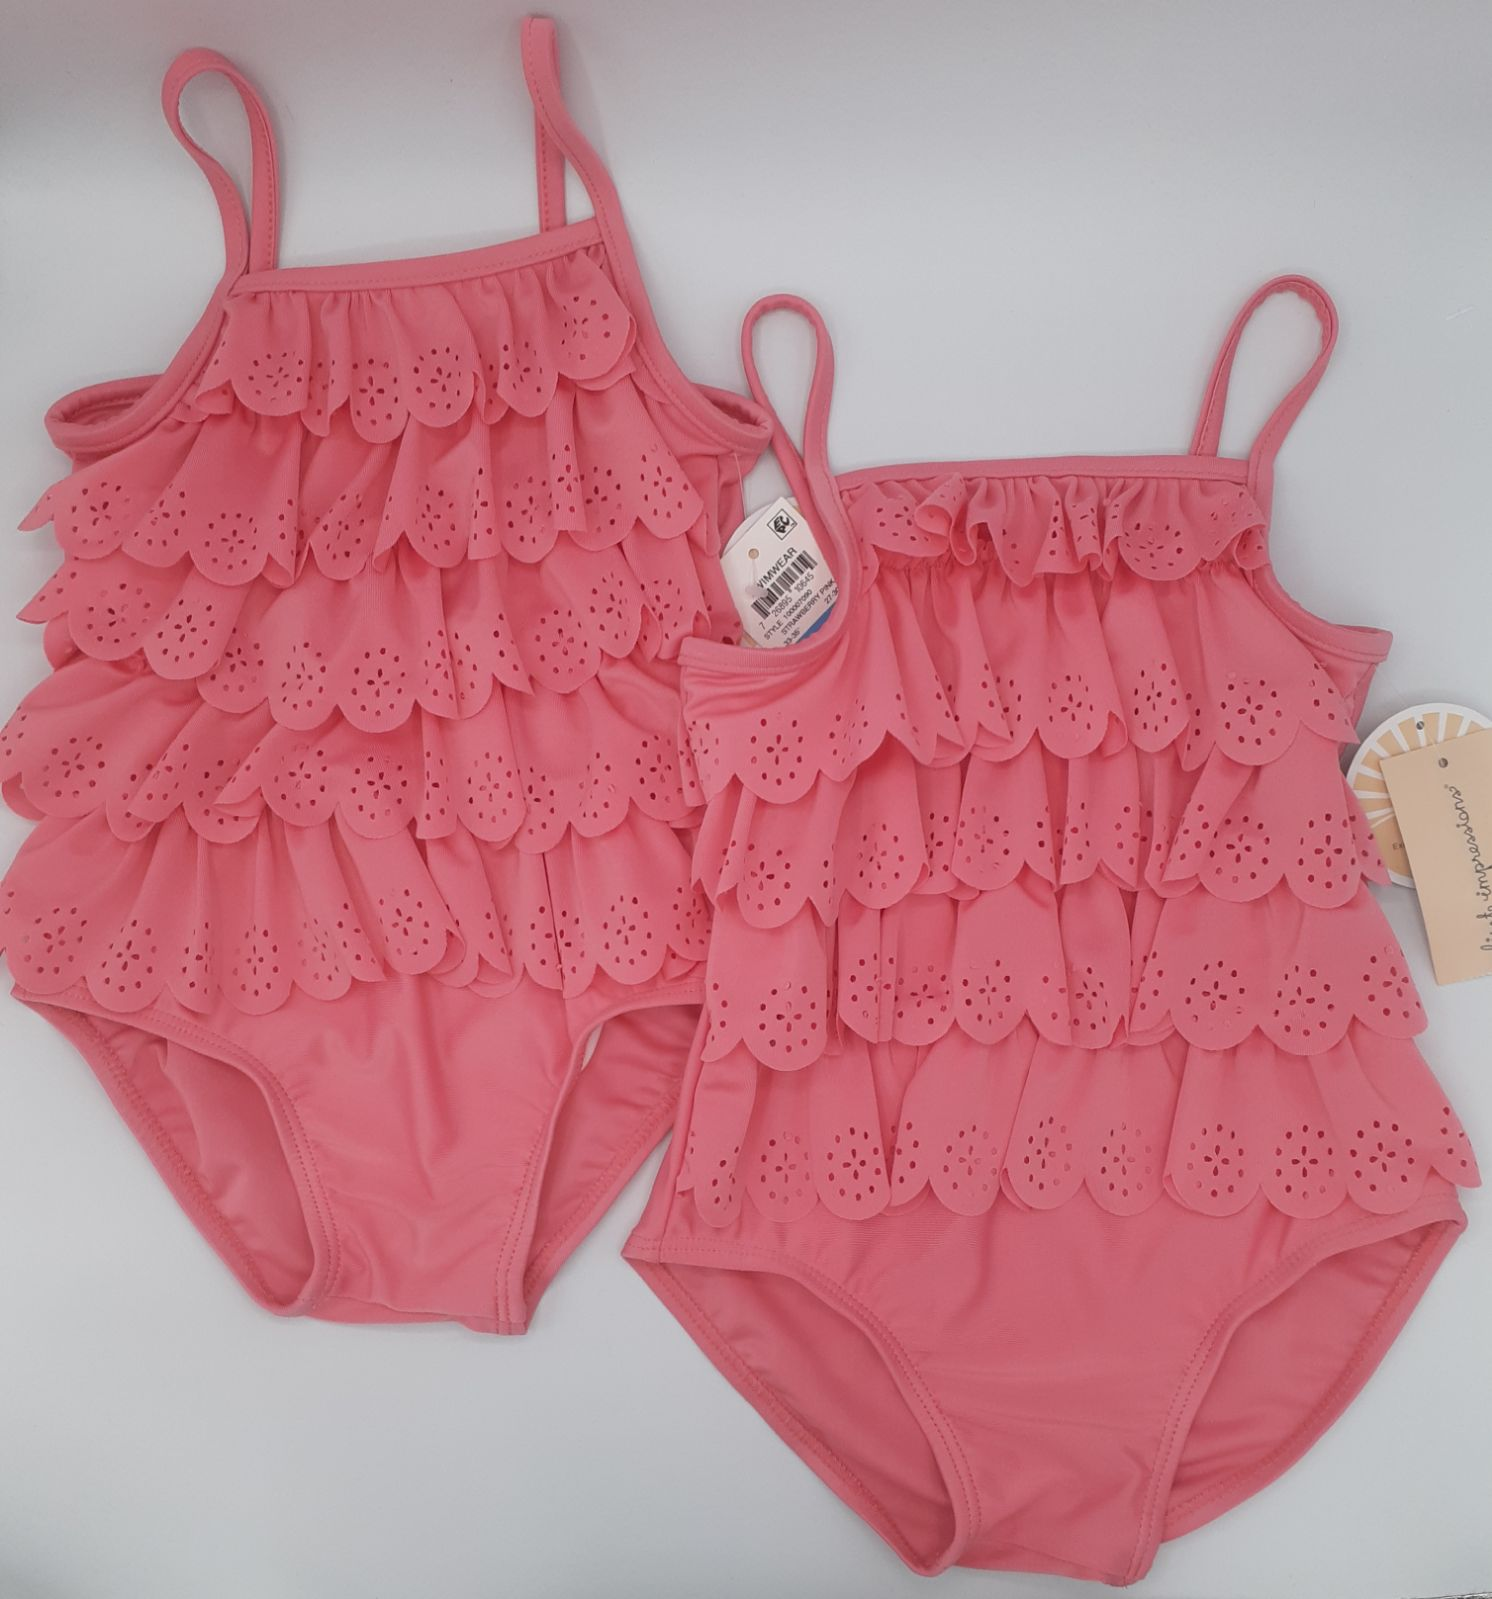 2 BABY GIRL FIRST IMPRESSIONS SWIMSUITS